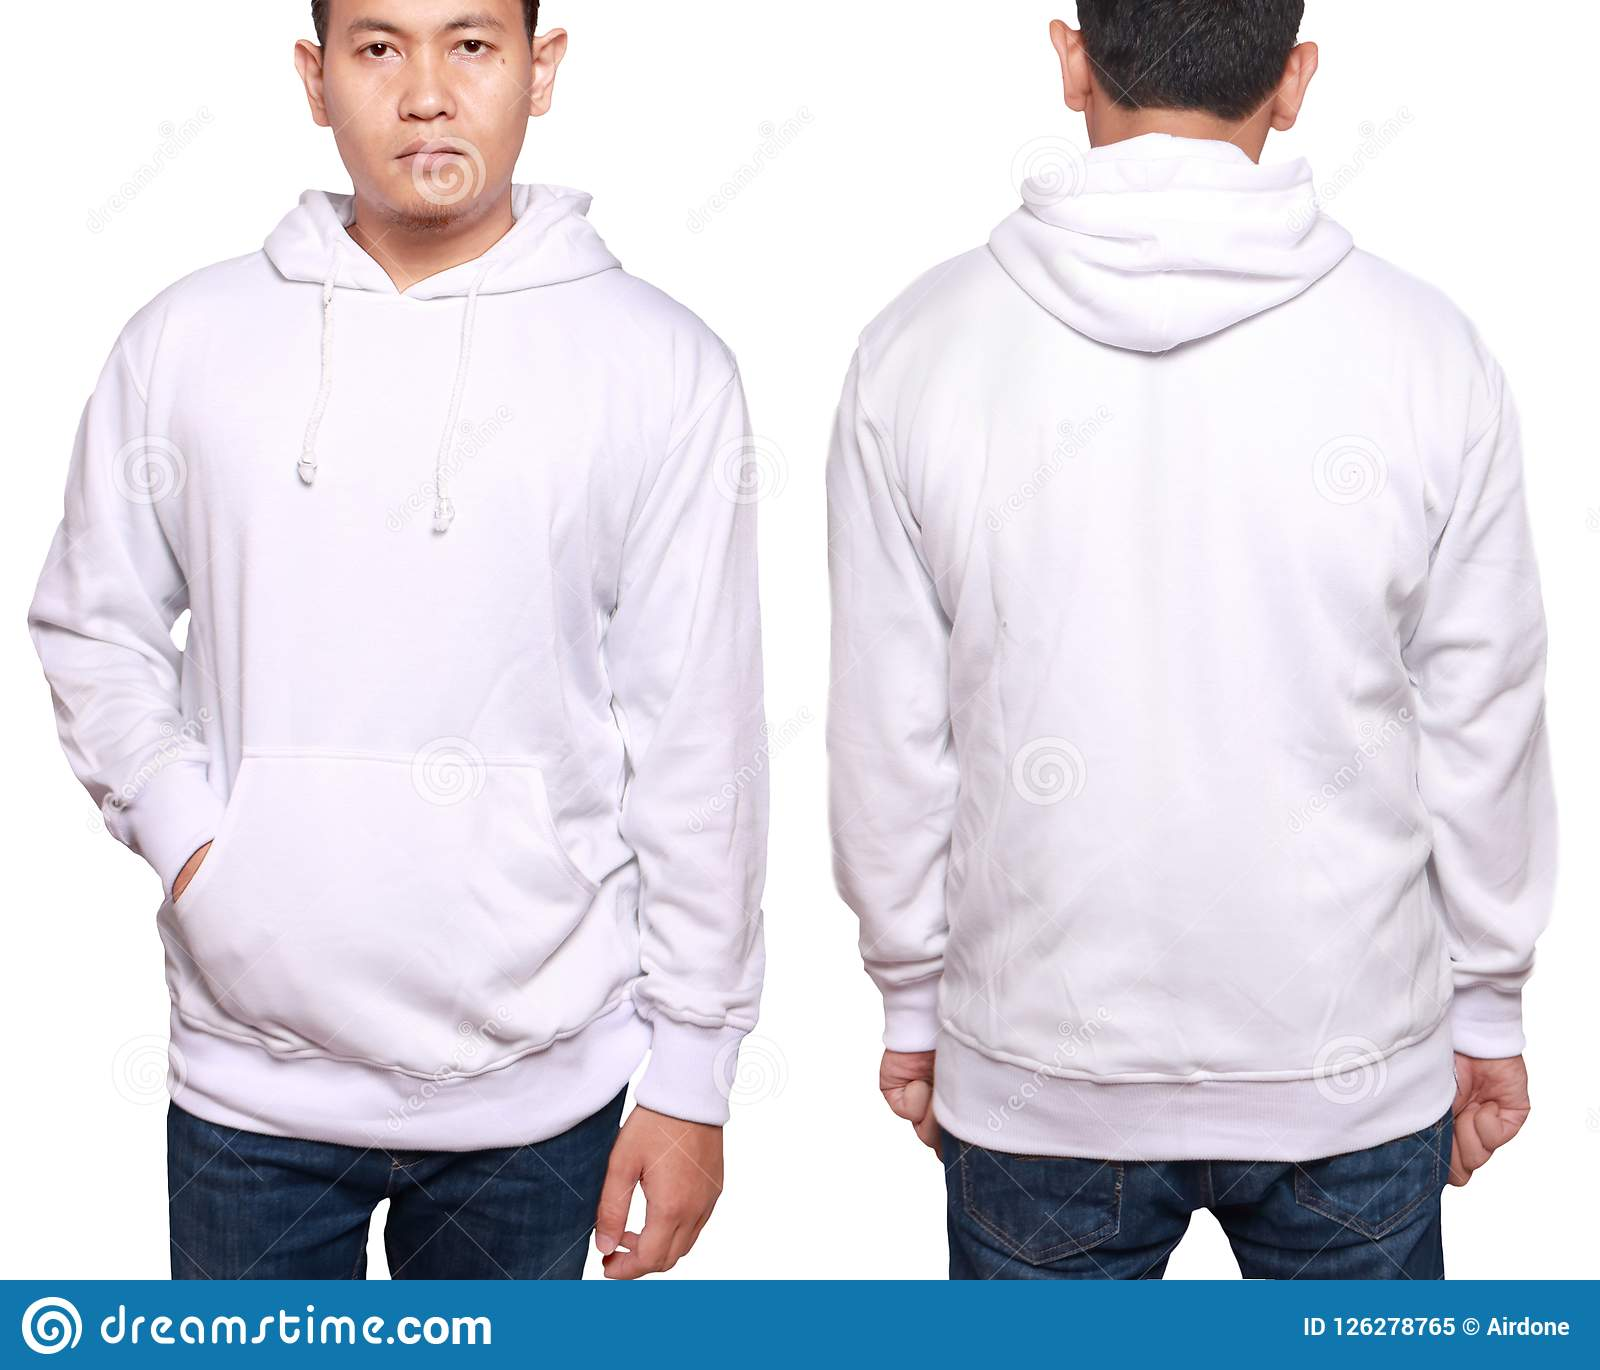 Asian male model wear plain white long sleeved sweater sweatshirt mockup